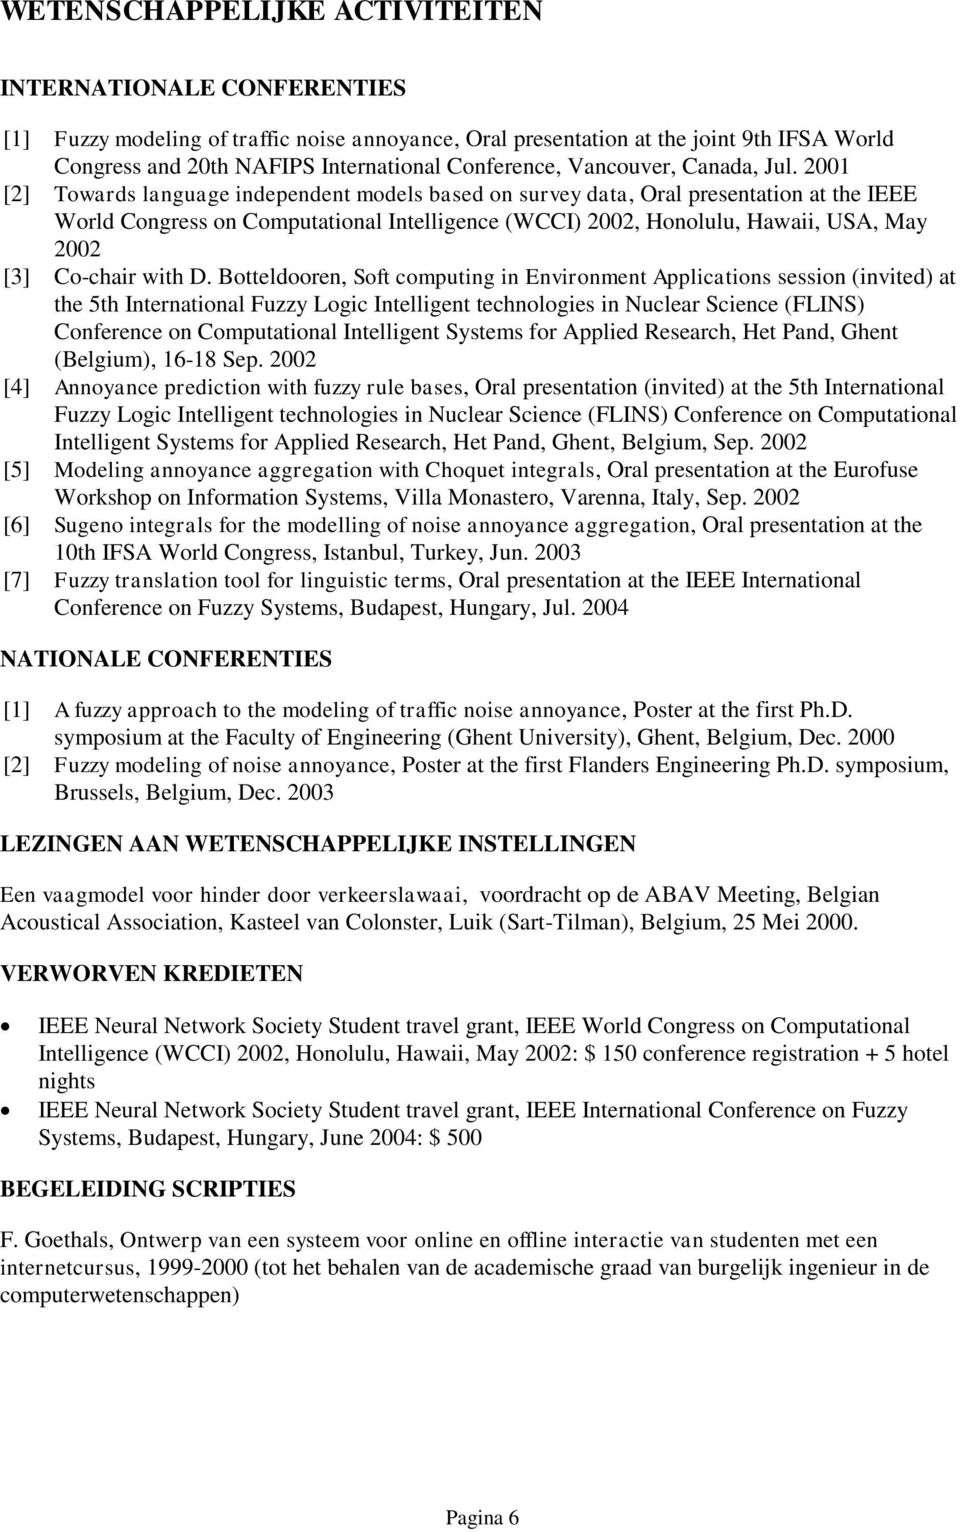 2001 [2] Towards language independent models based on survey data, Oral presentation at the IEEE World Congress on Computational Intelligence (WCCI) 2002, Honolulu, Hawaii, USA, May 2002 [3] Co-chair